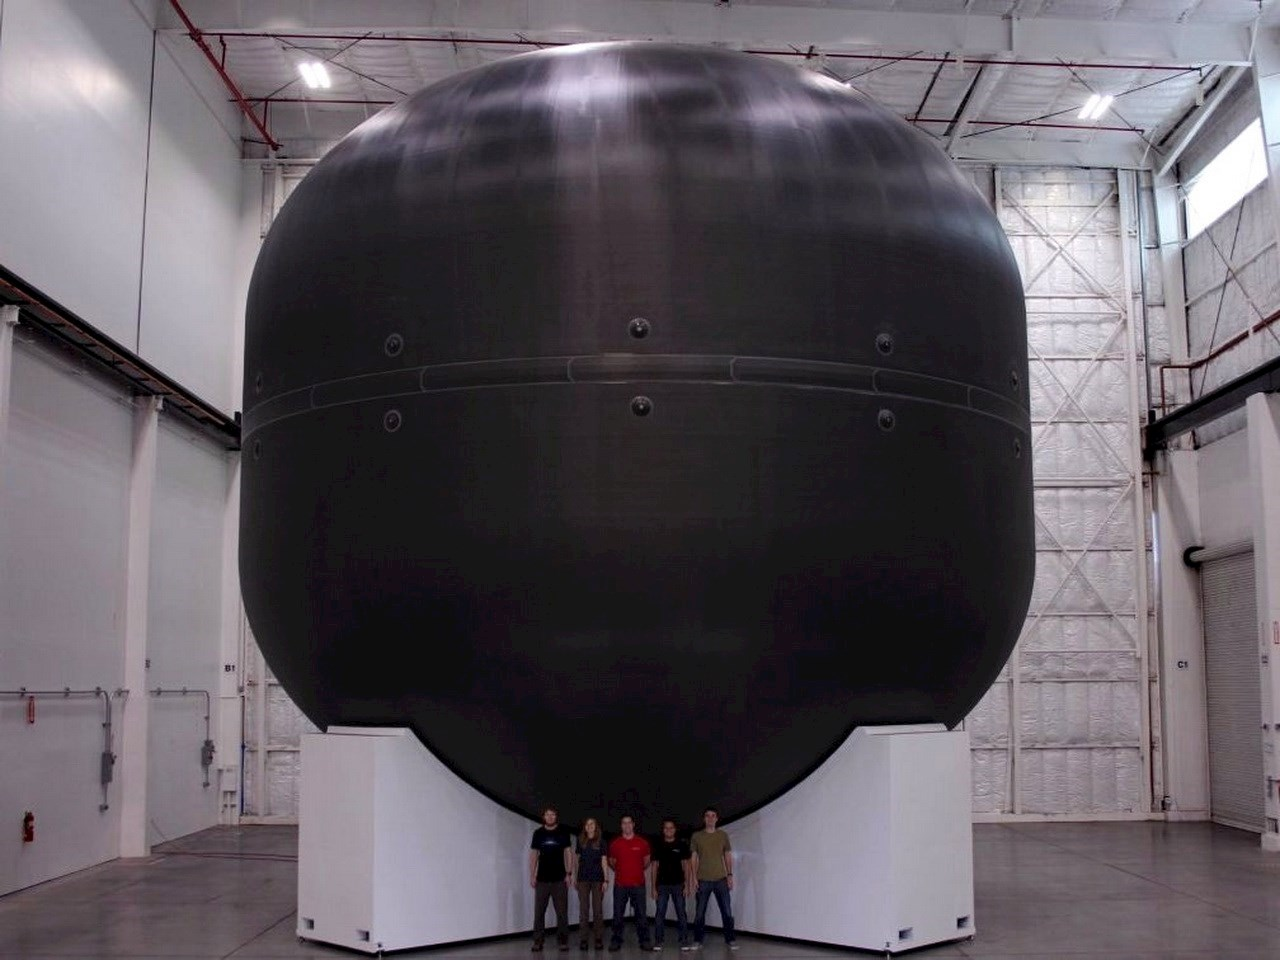 Giant fuel tank for the Mars spaceship